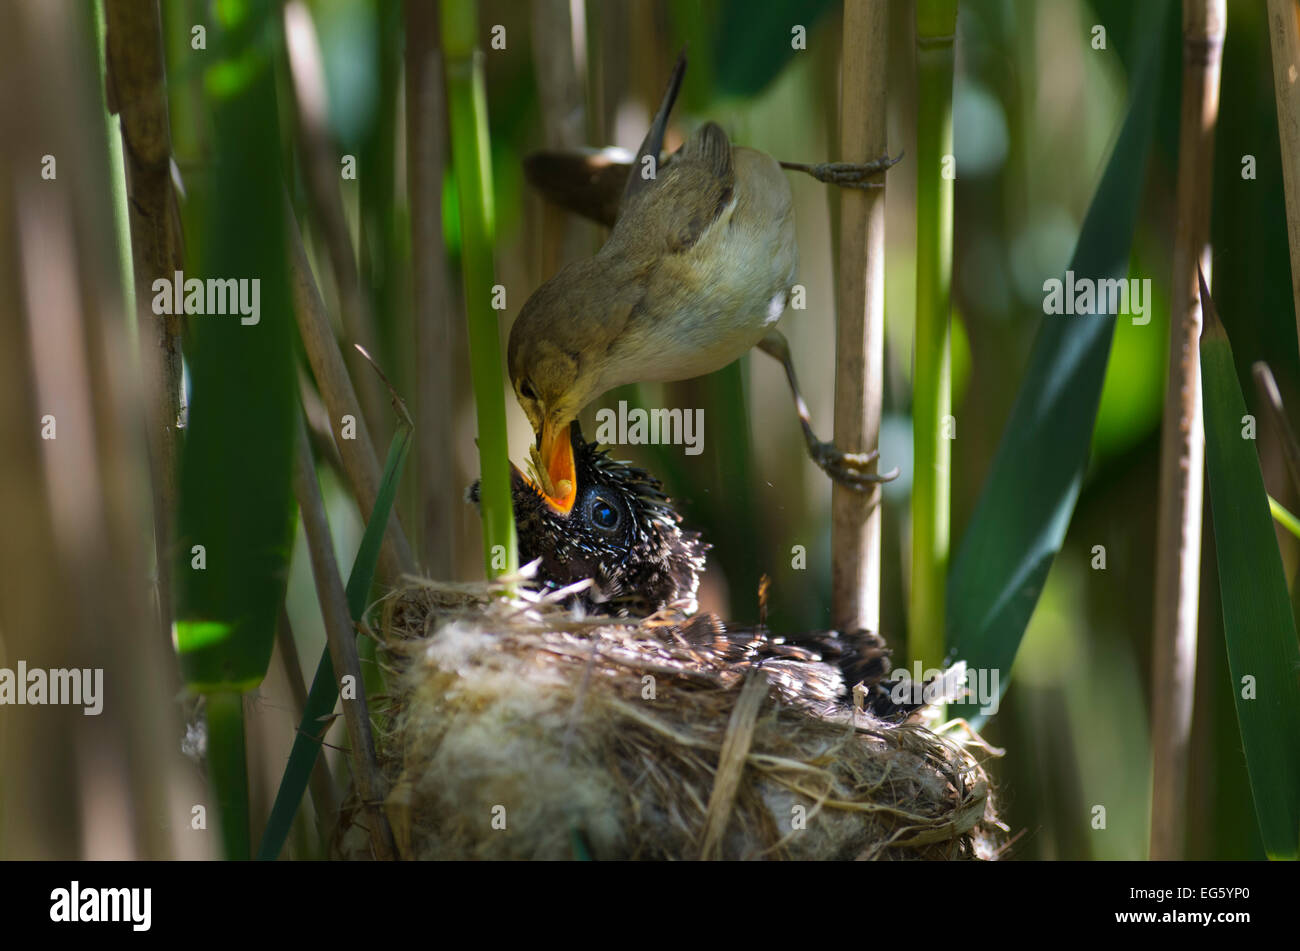 Cuckoo (Cuculus canorus) 12 day chick in Reed Warbler nest (Acrocephalus scirpaceus) fed by Reed warbler, Fenland, - Stock Image